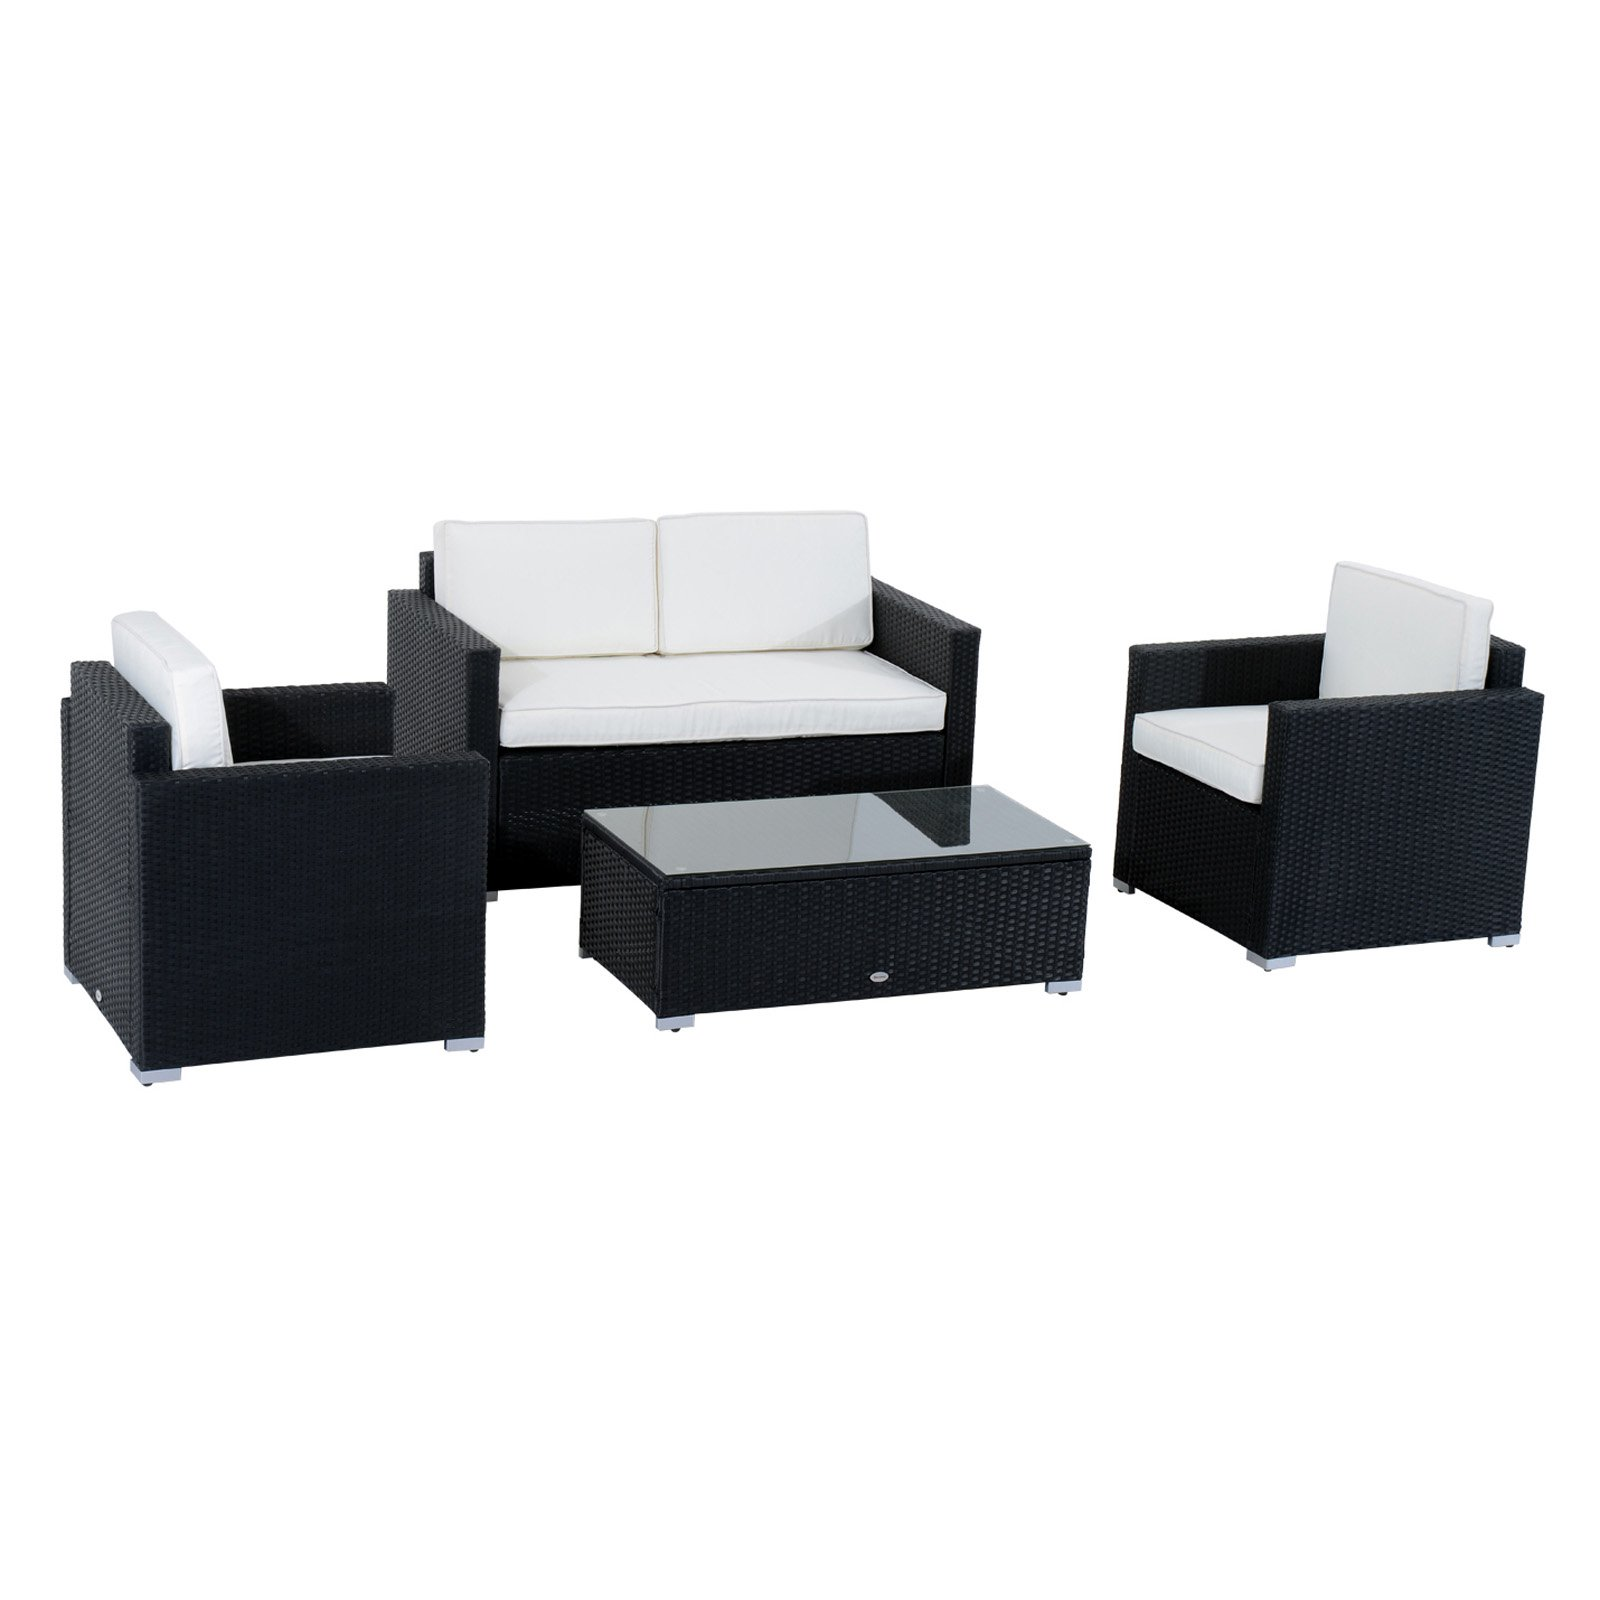 Outsunny 4 Piece Cushioned Outdoor Rattan Wicker Sofa Sectional Patio Furniture Set by Aosom LLC